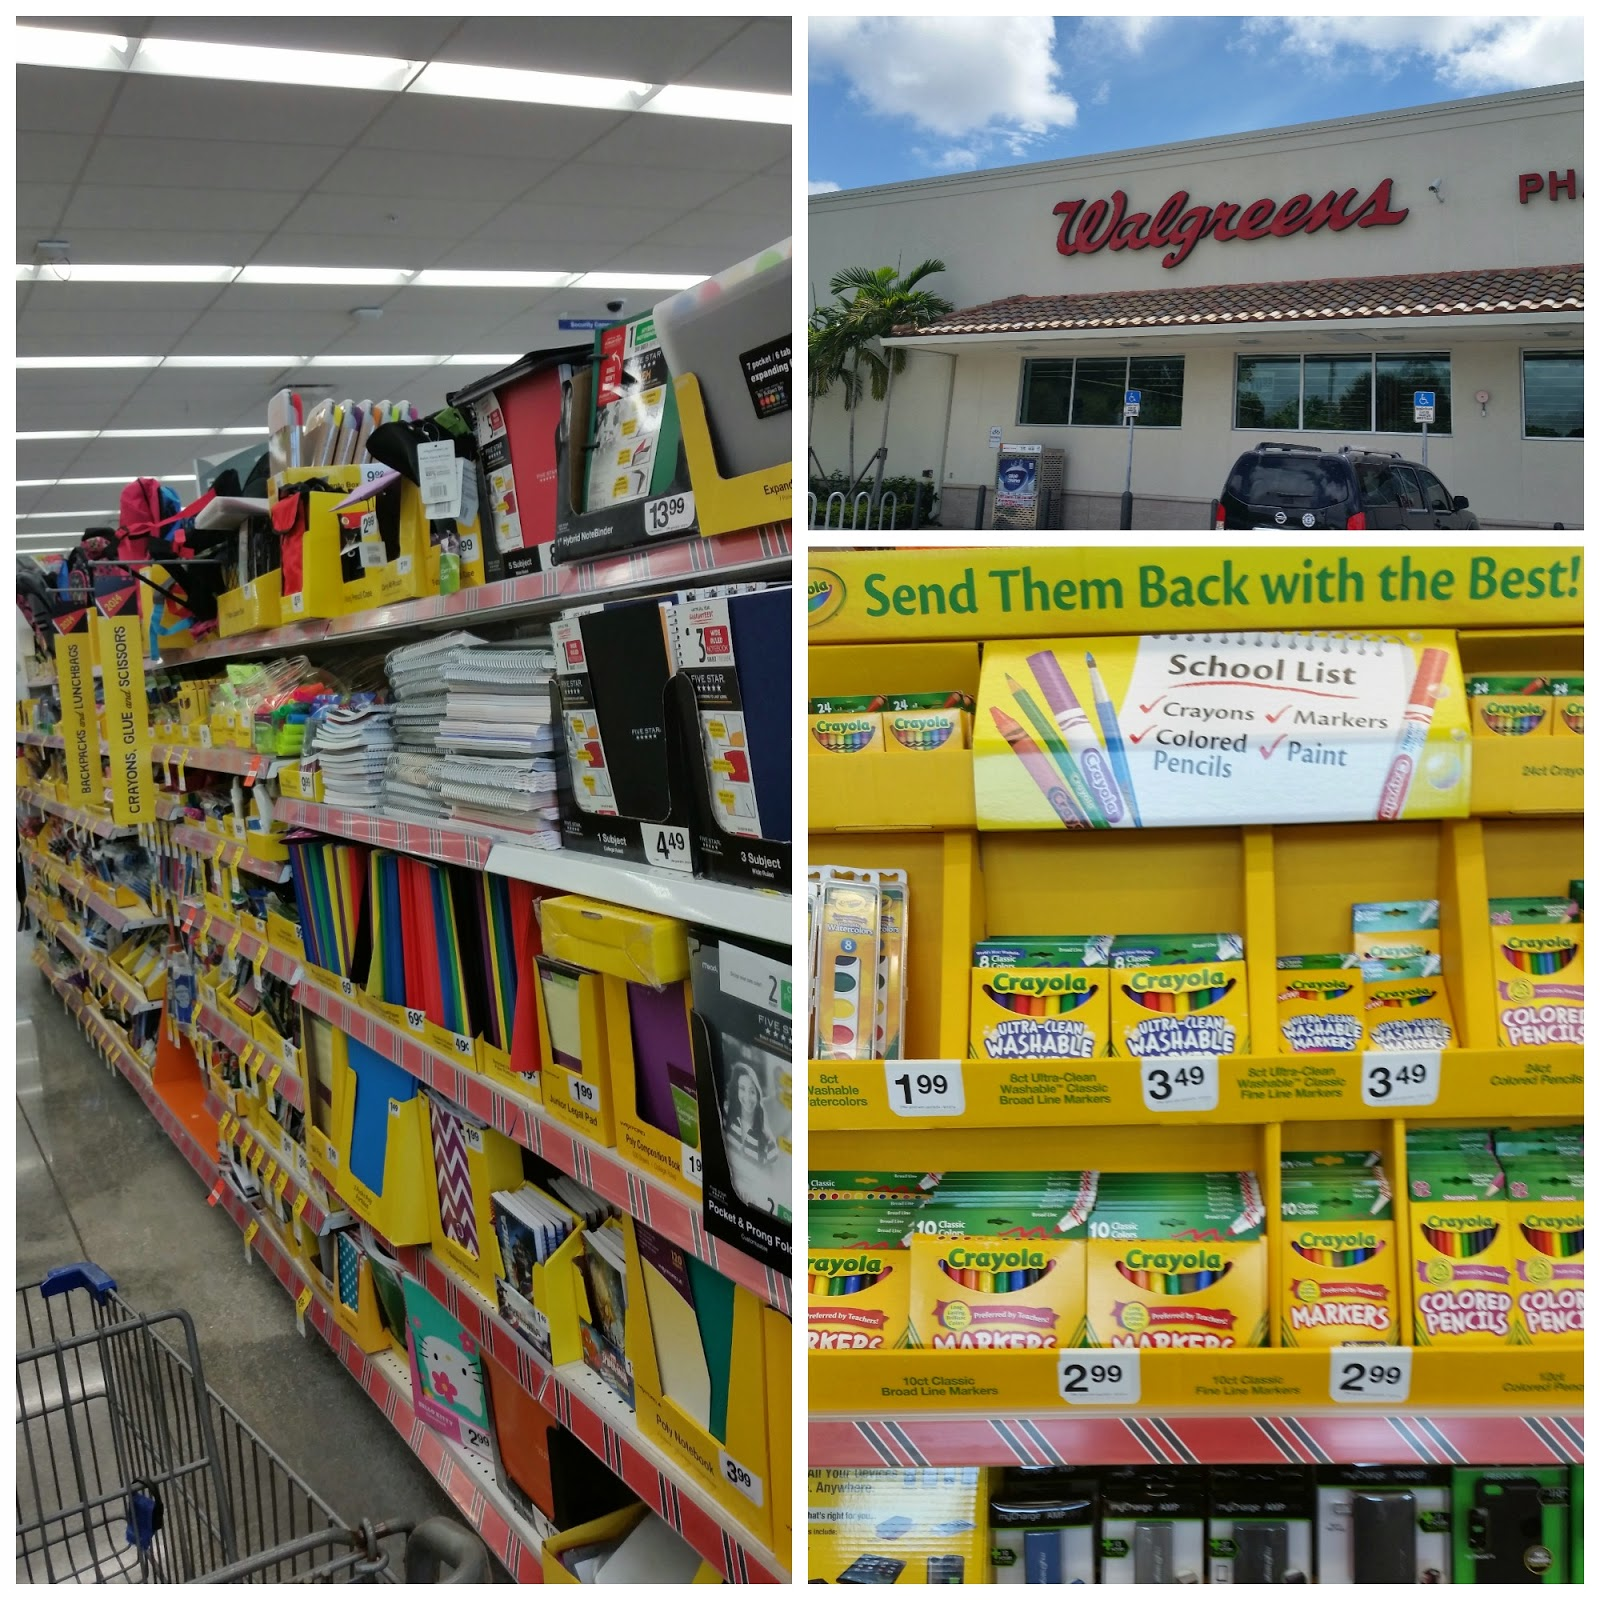 Save on Back to School items at Walgreens #WalgreensPaperless #shop